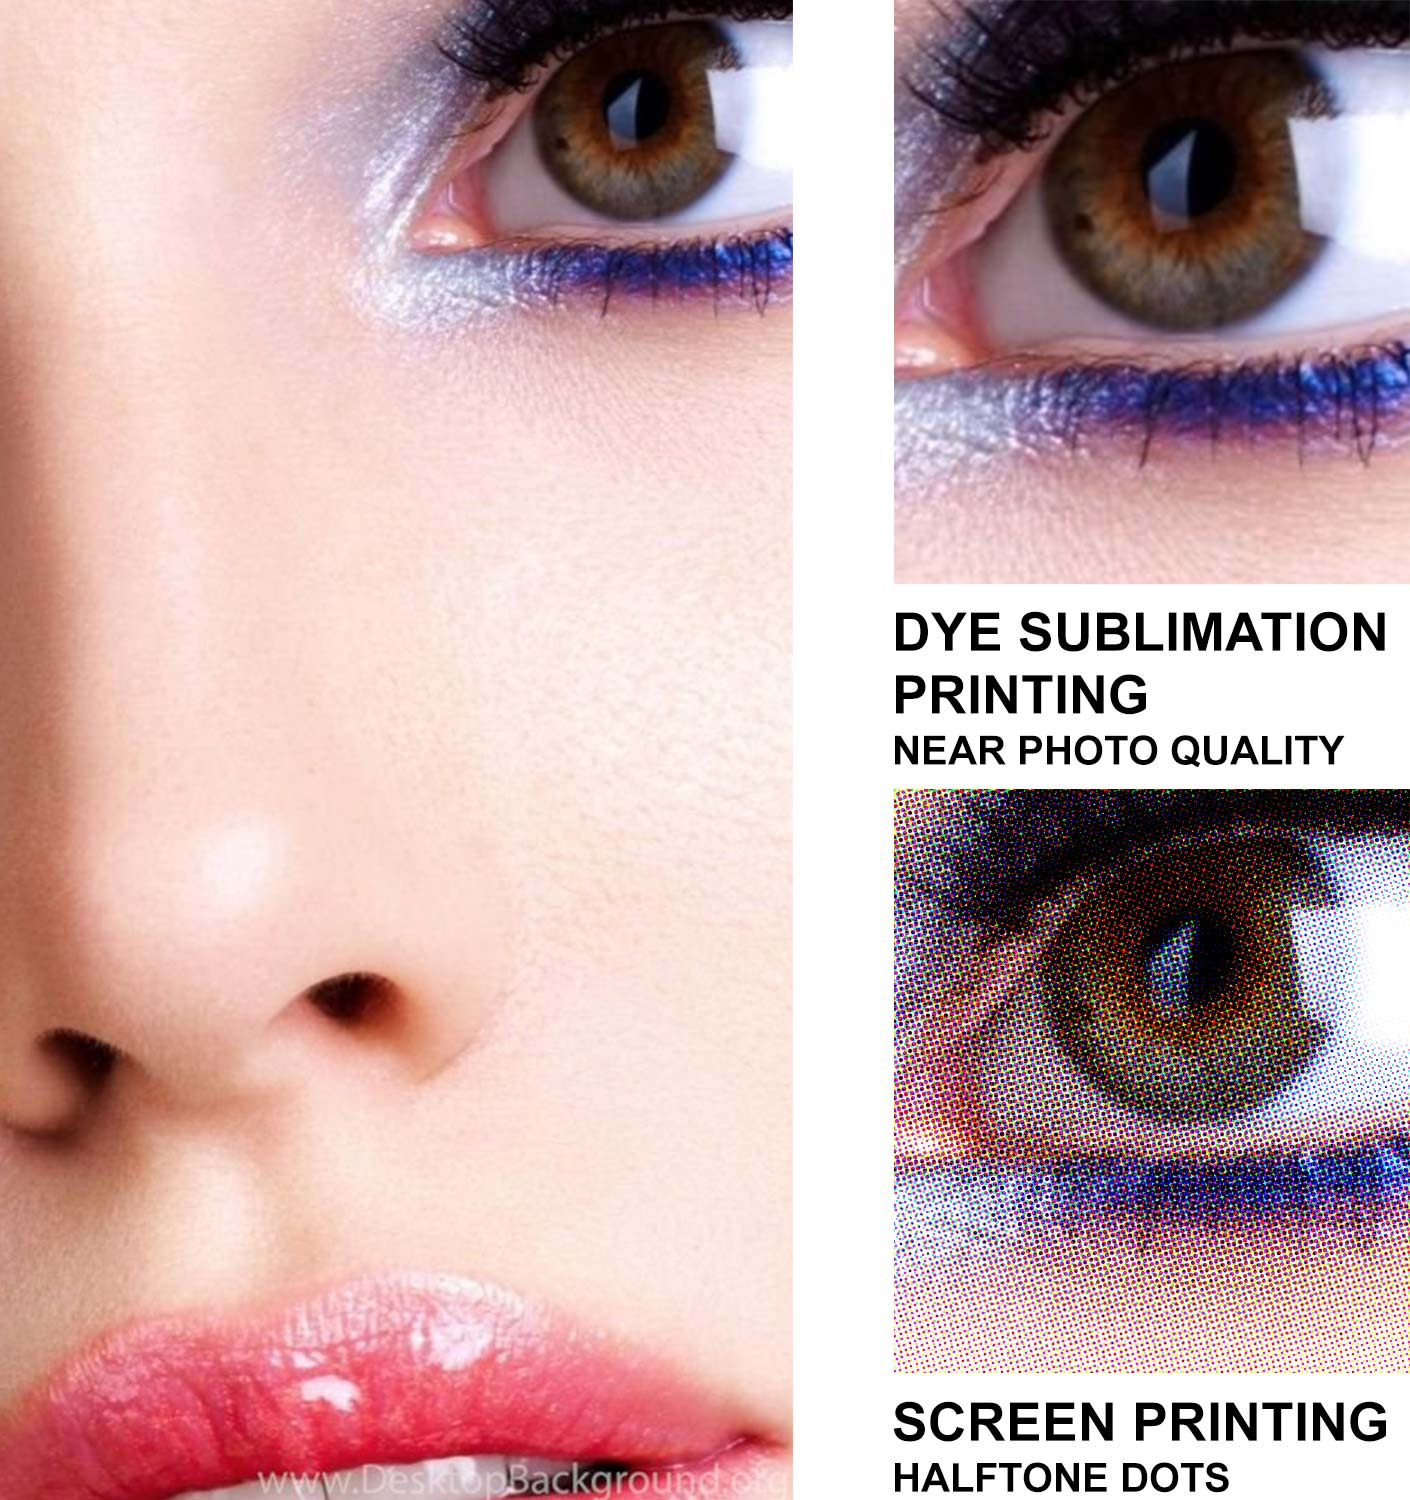 Dye Sublimation Printing is near photo quality - versus Screen Printing with halftone dots